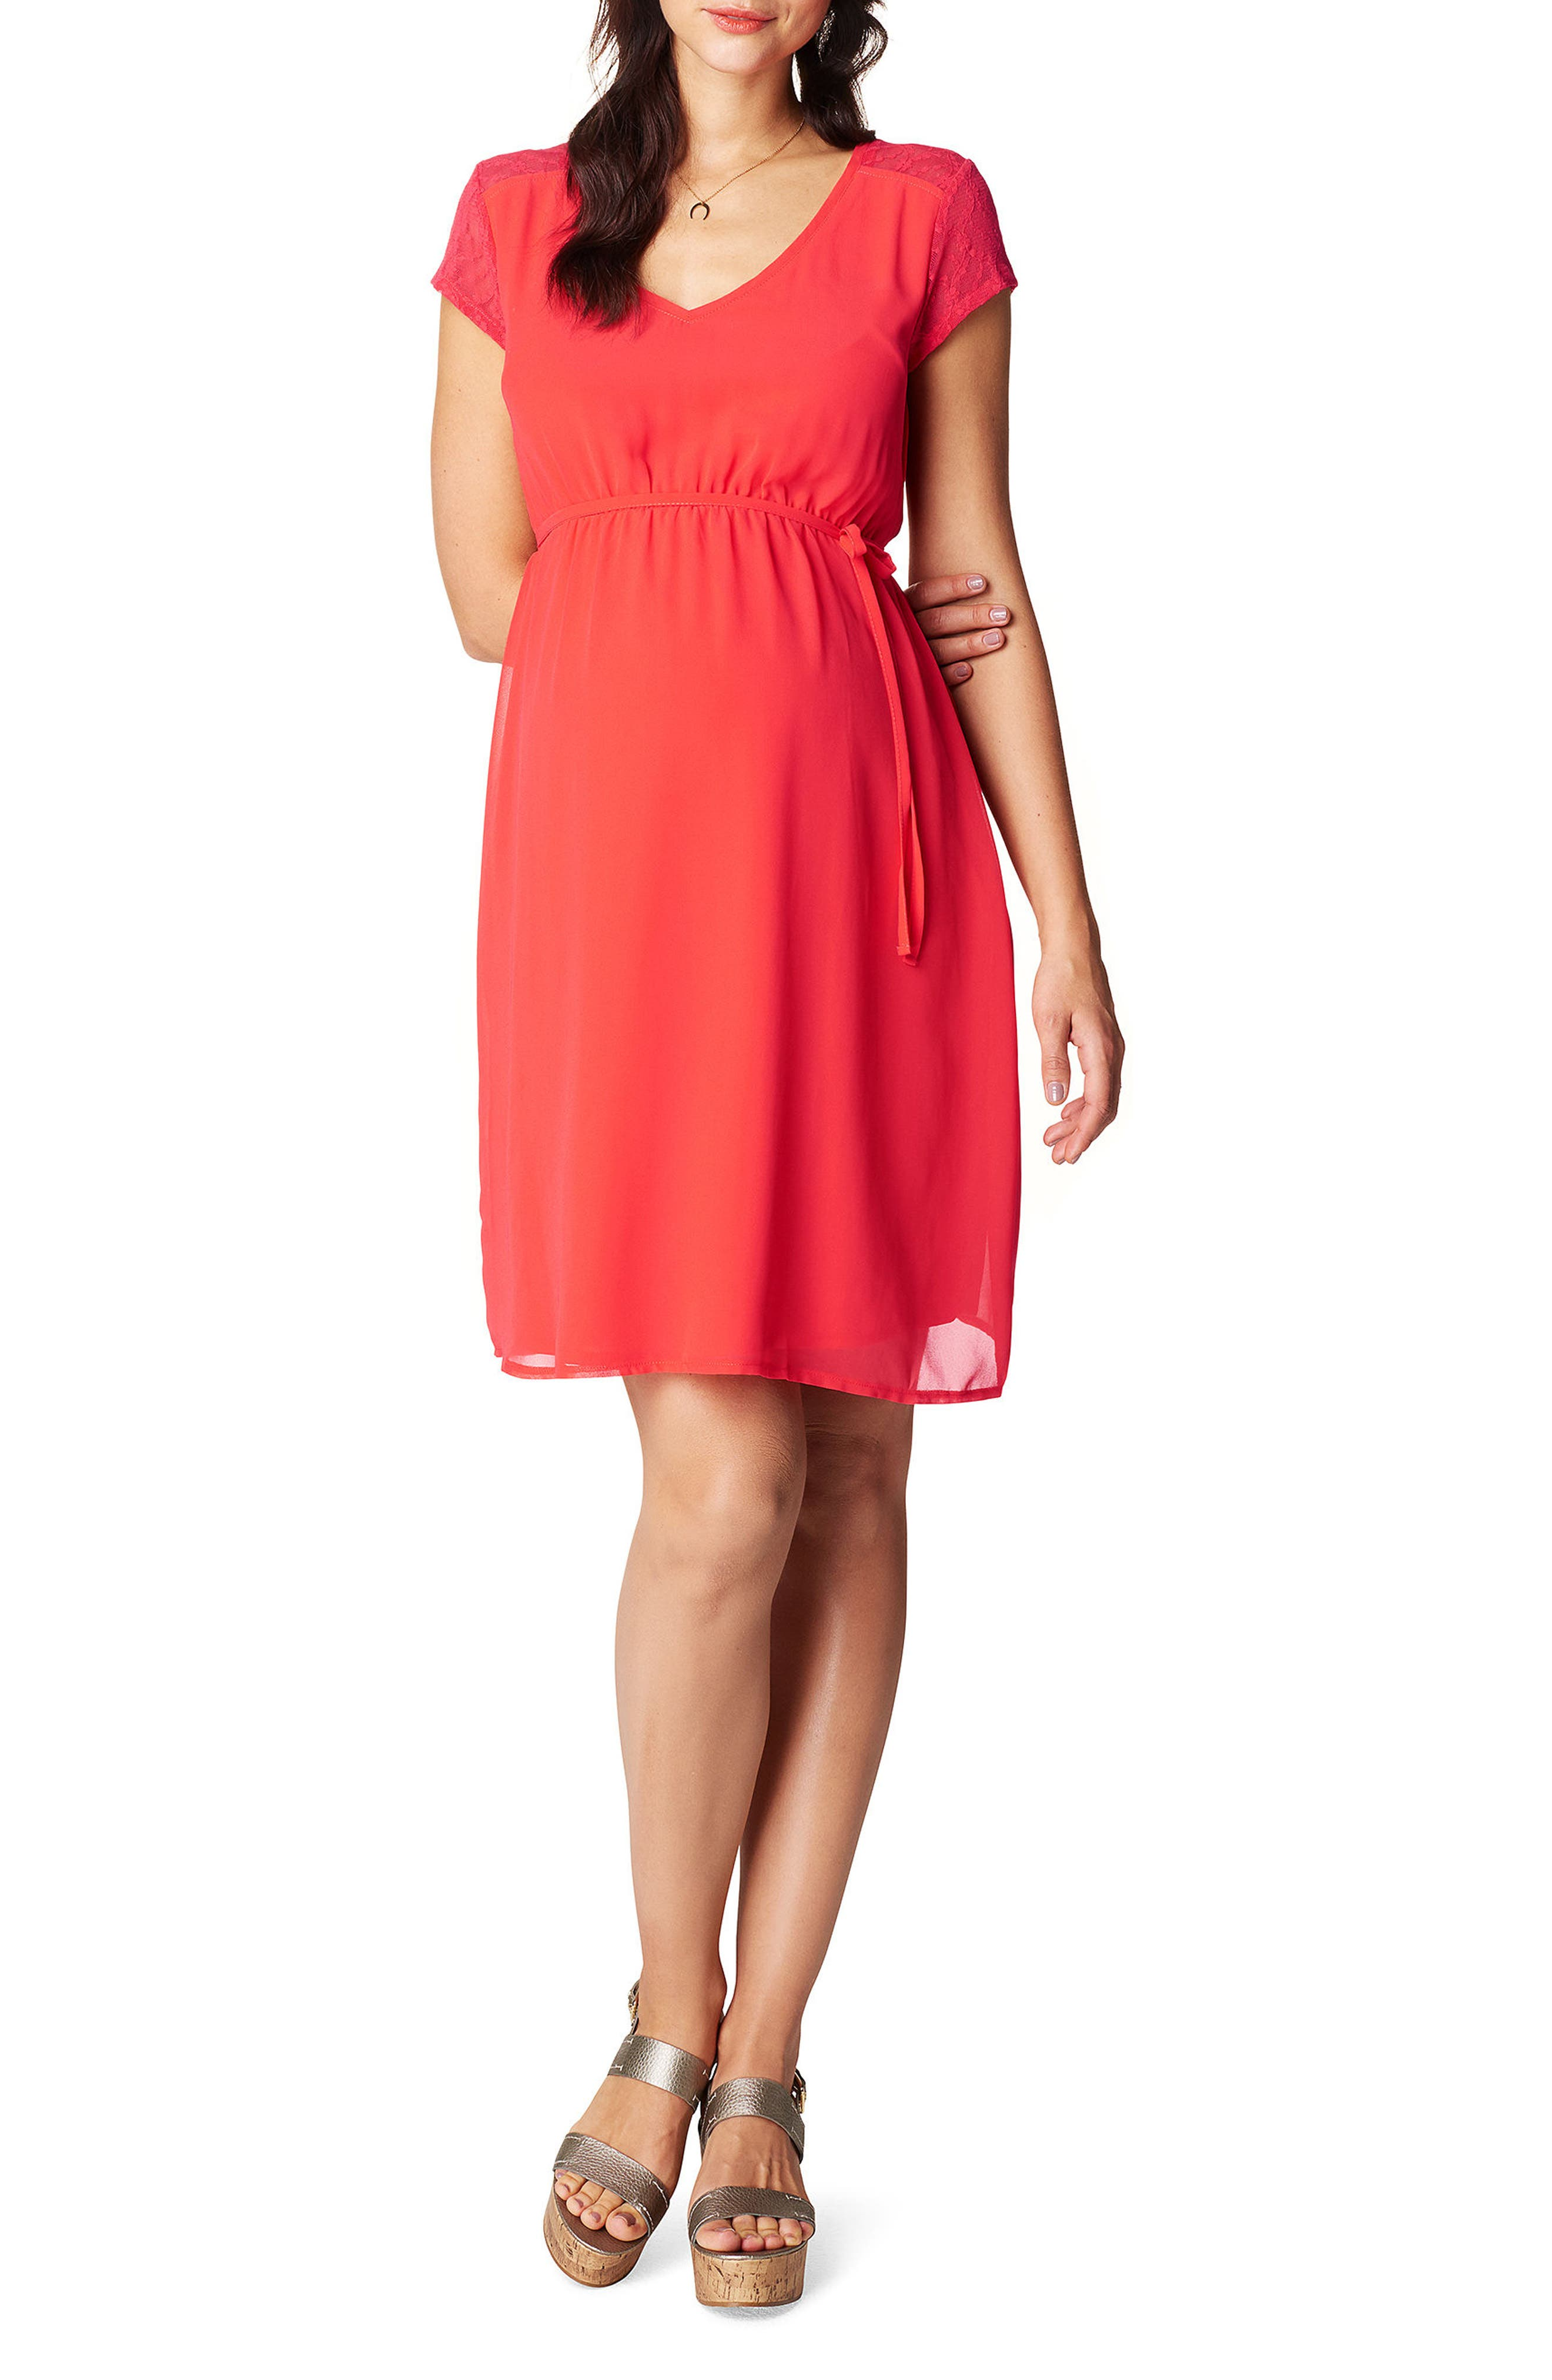 Noelle Maternity Dress,                         Main,                         color, RED